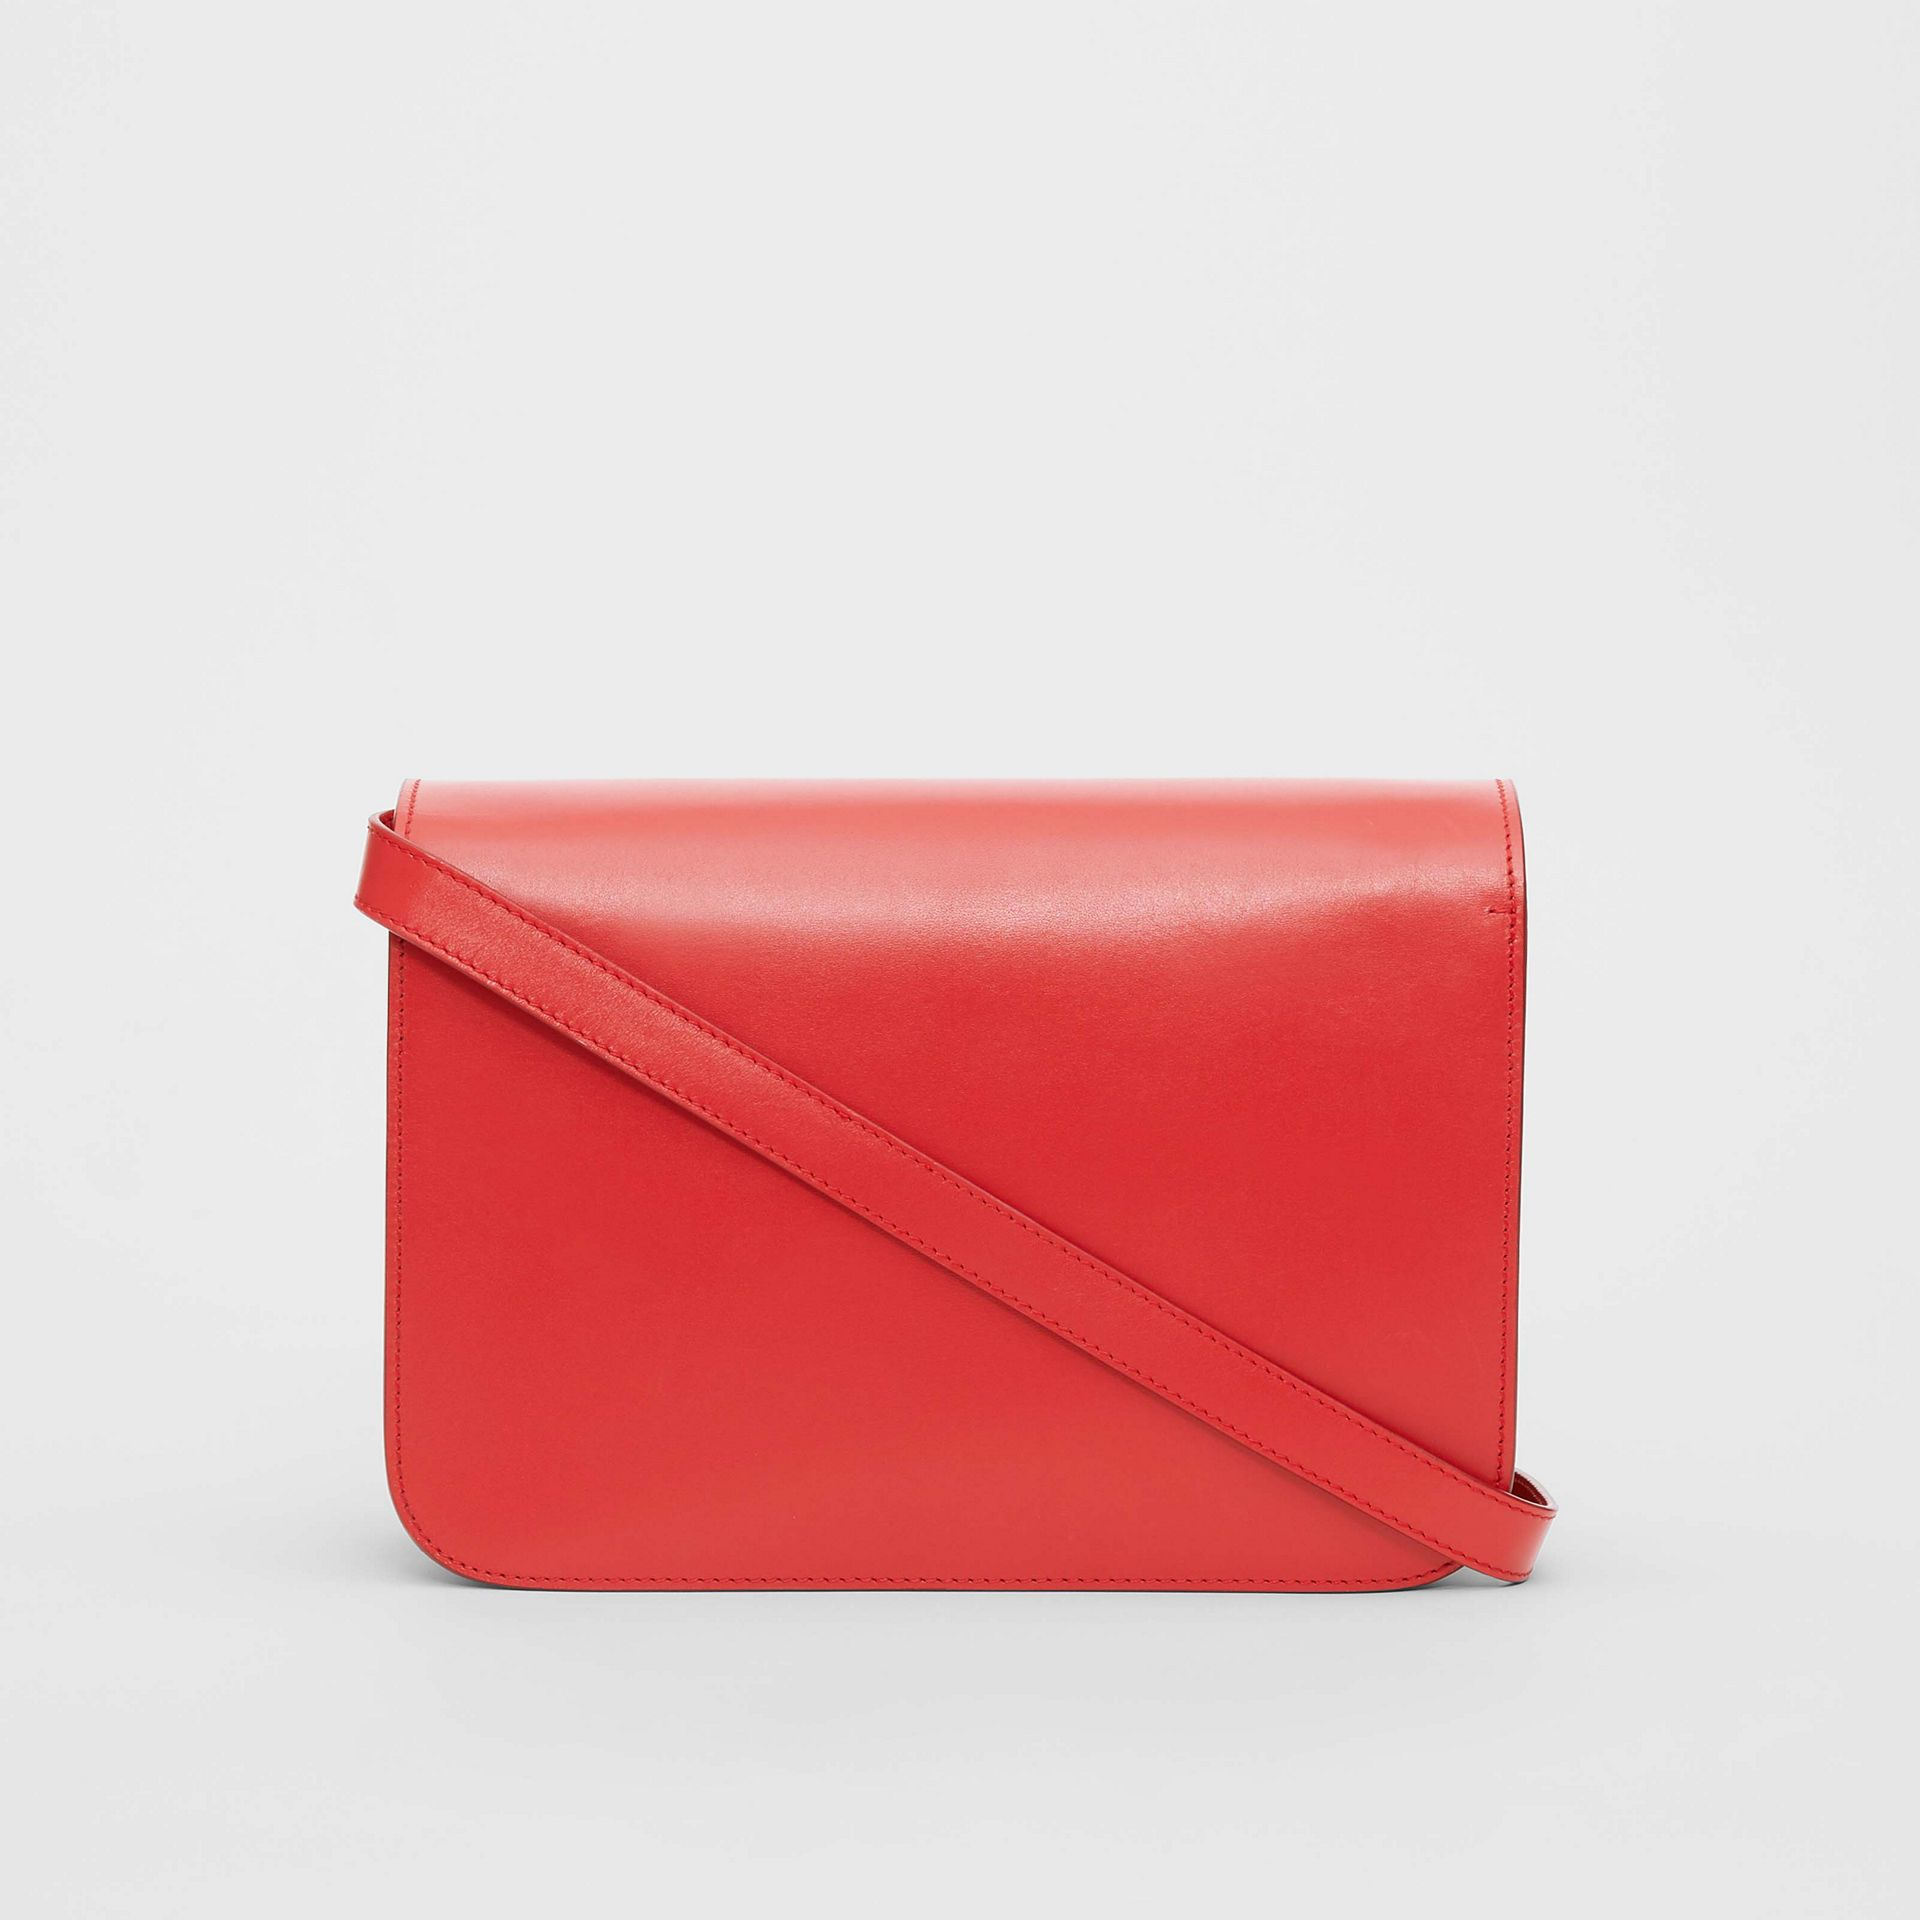 Medium Leather TB Bag in Bright Red | Burberry - gallery image 7